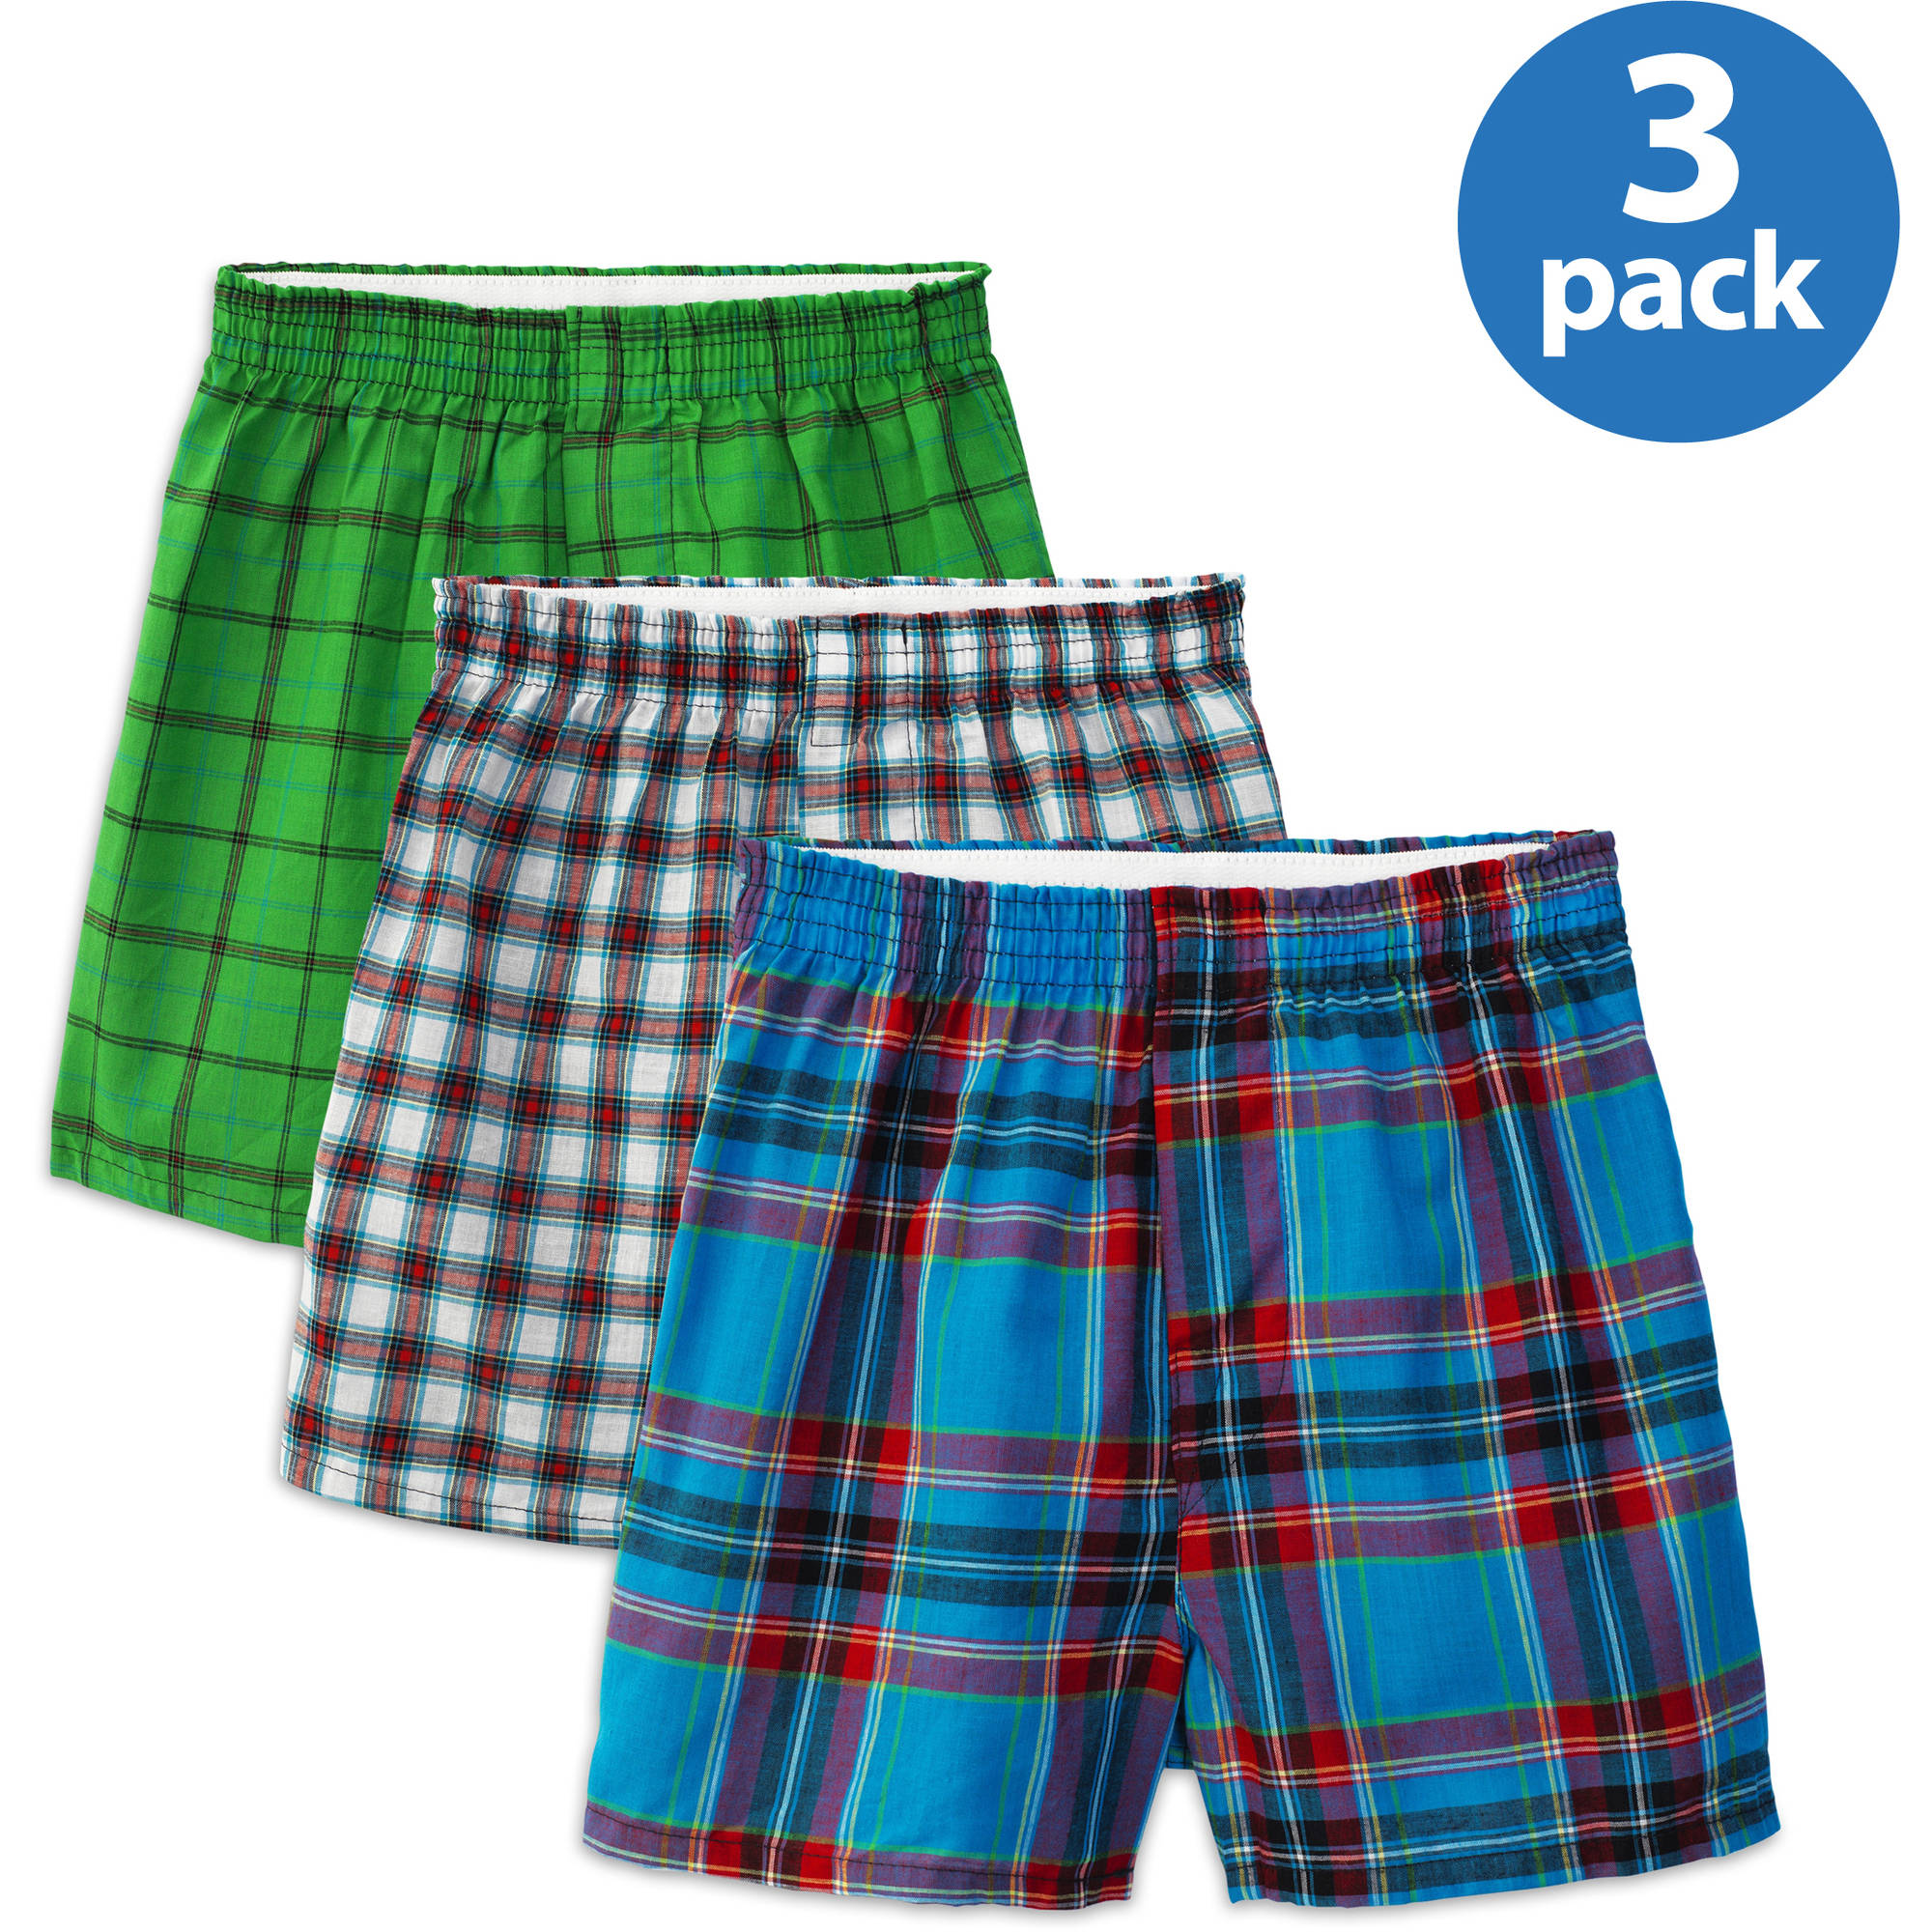 Fruit of the Loom - Boys' Assorted Boxers, 3-Pack